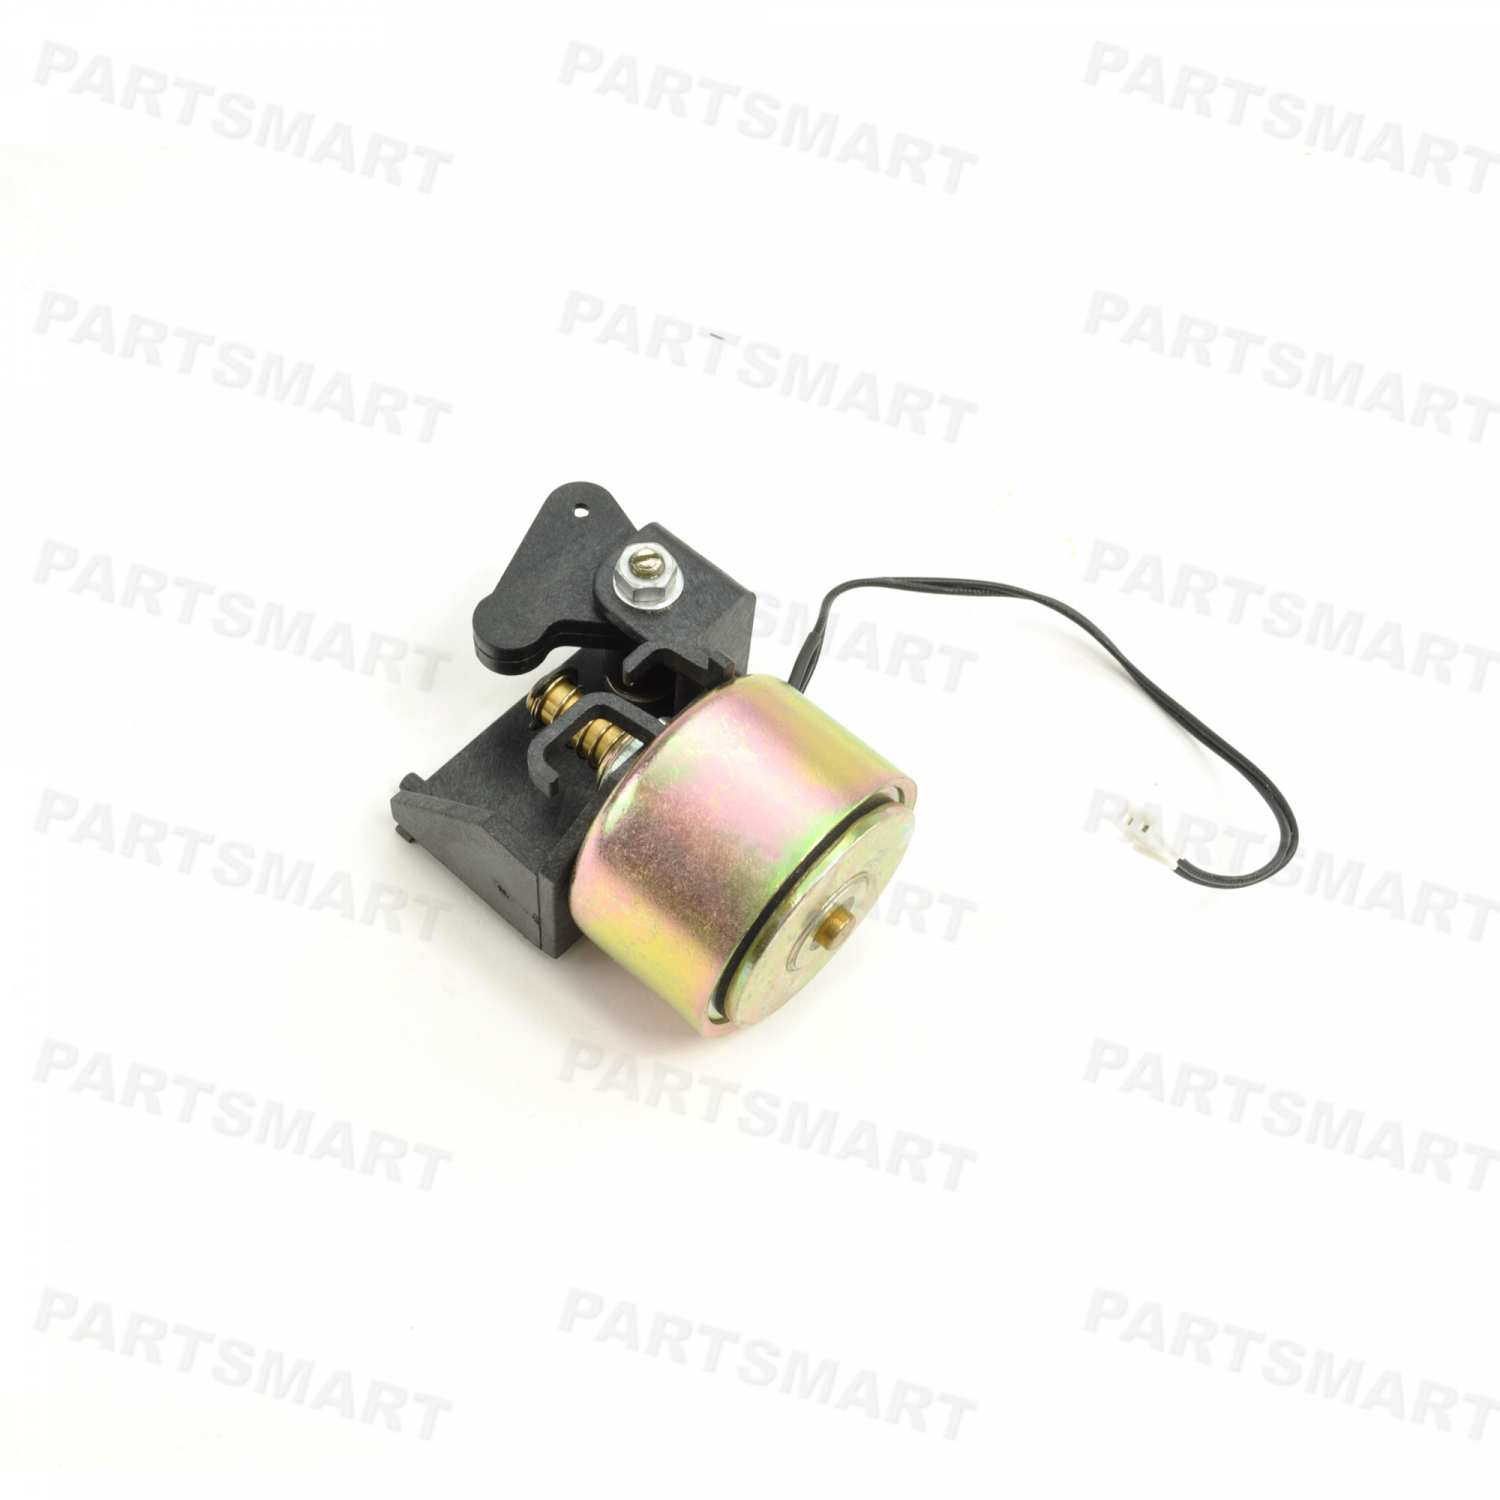 99A0173-T630 Solenoid Envelope Condition for Lexmark T63x, T64x